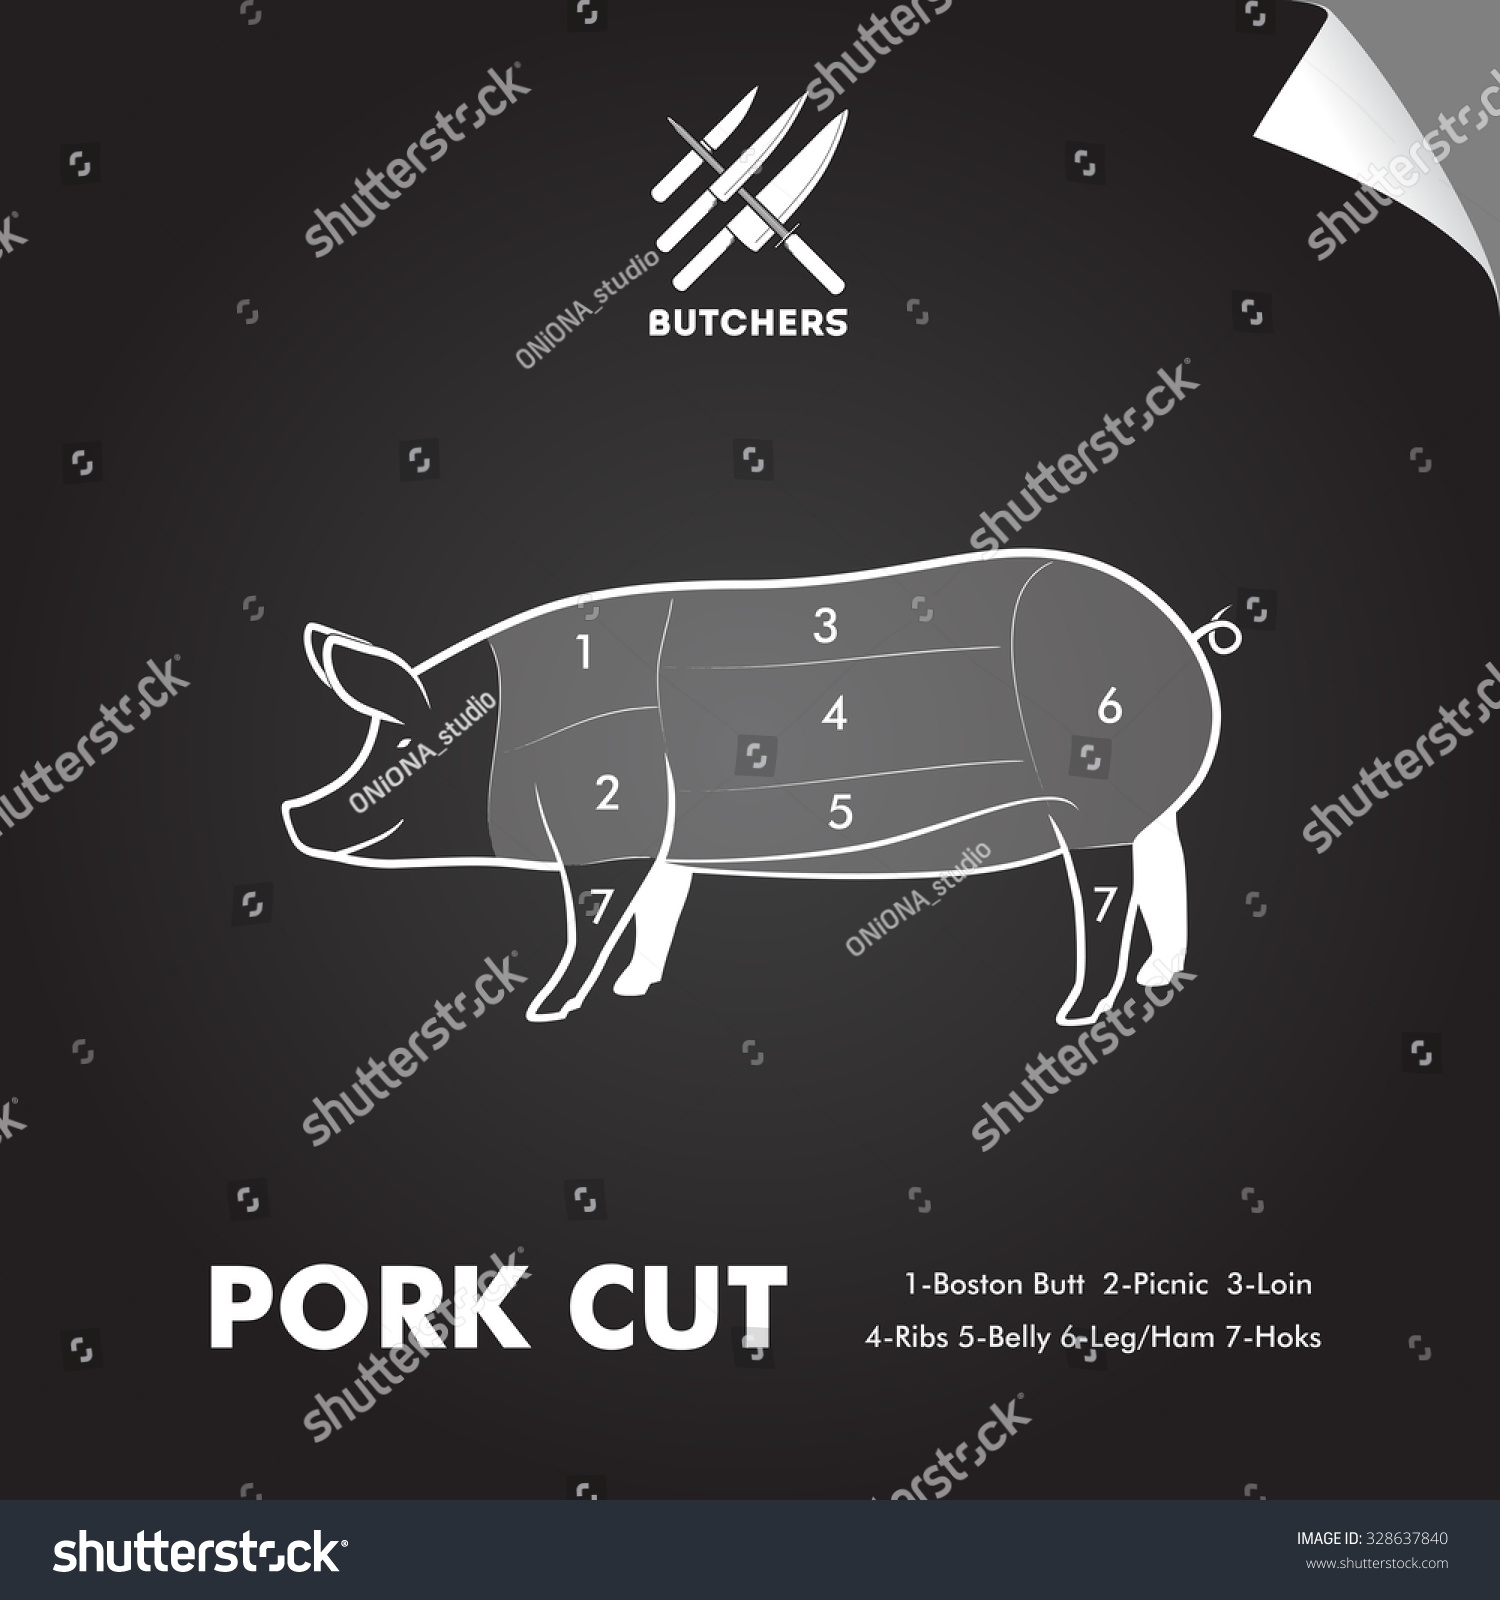 Simply Pork Meat Cutting Diagram On Stock Vector Royalty Free Pig Cut Blackboard Sheet Butchers Sign